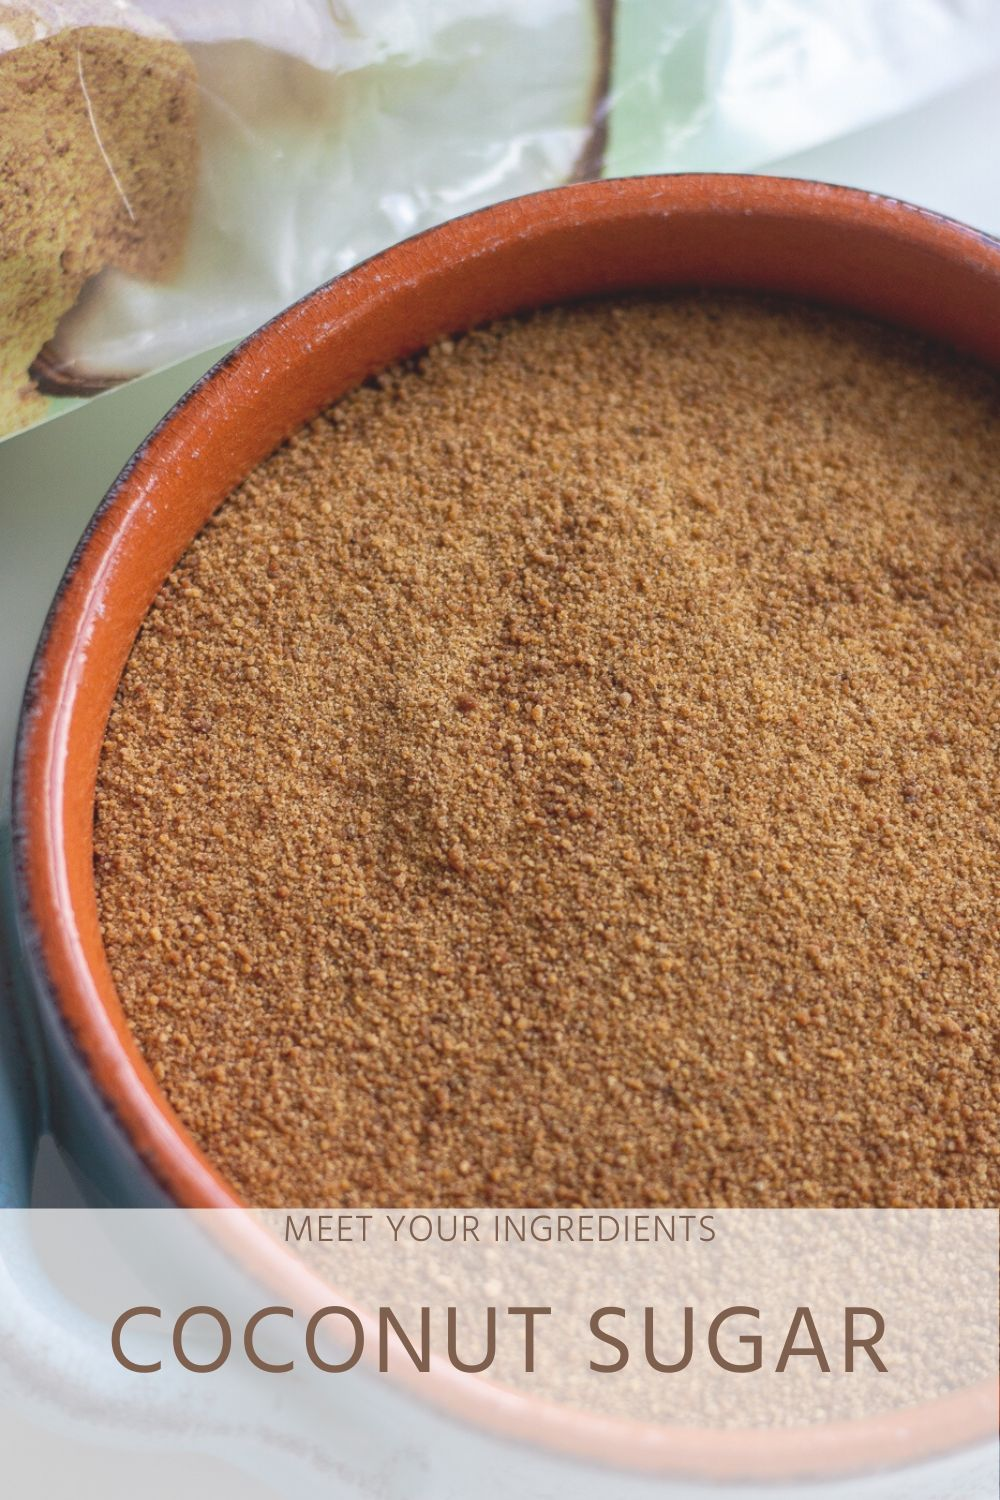 Meet Your Ingredients: Coconut Sugar